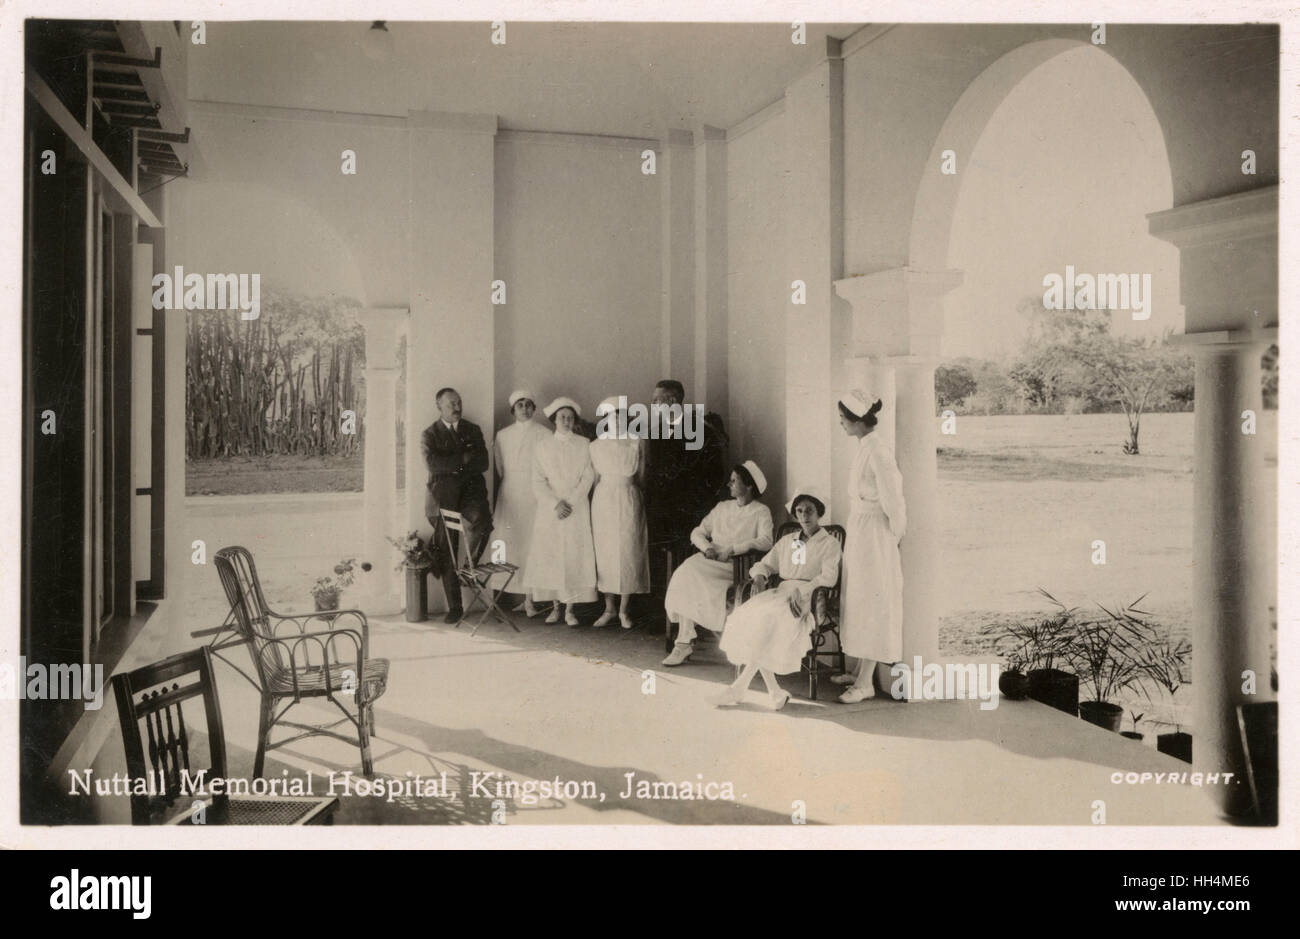 Nuttall Memorial Hospital, Kingston, Jamaica, West Indies, with six nurses and two men on a terrace. Stock Photo